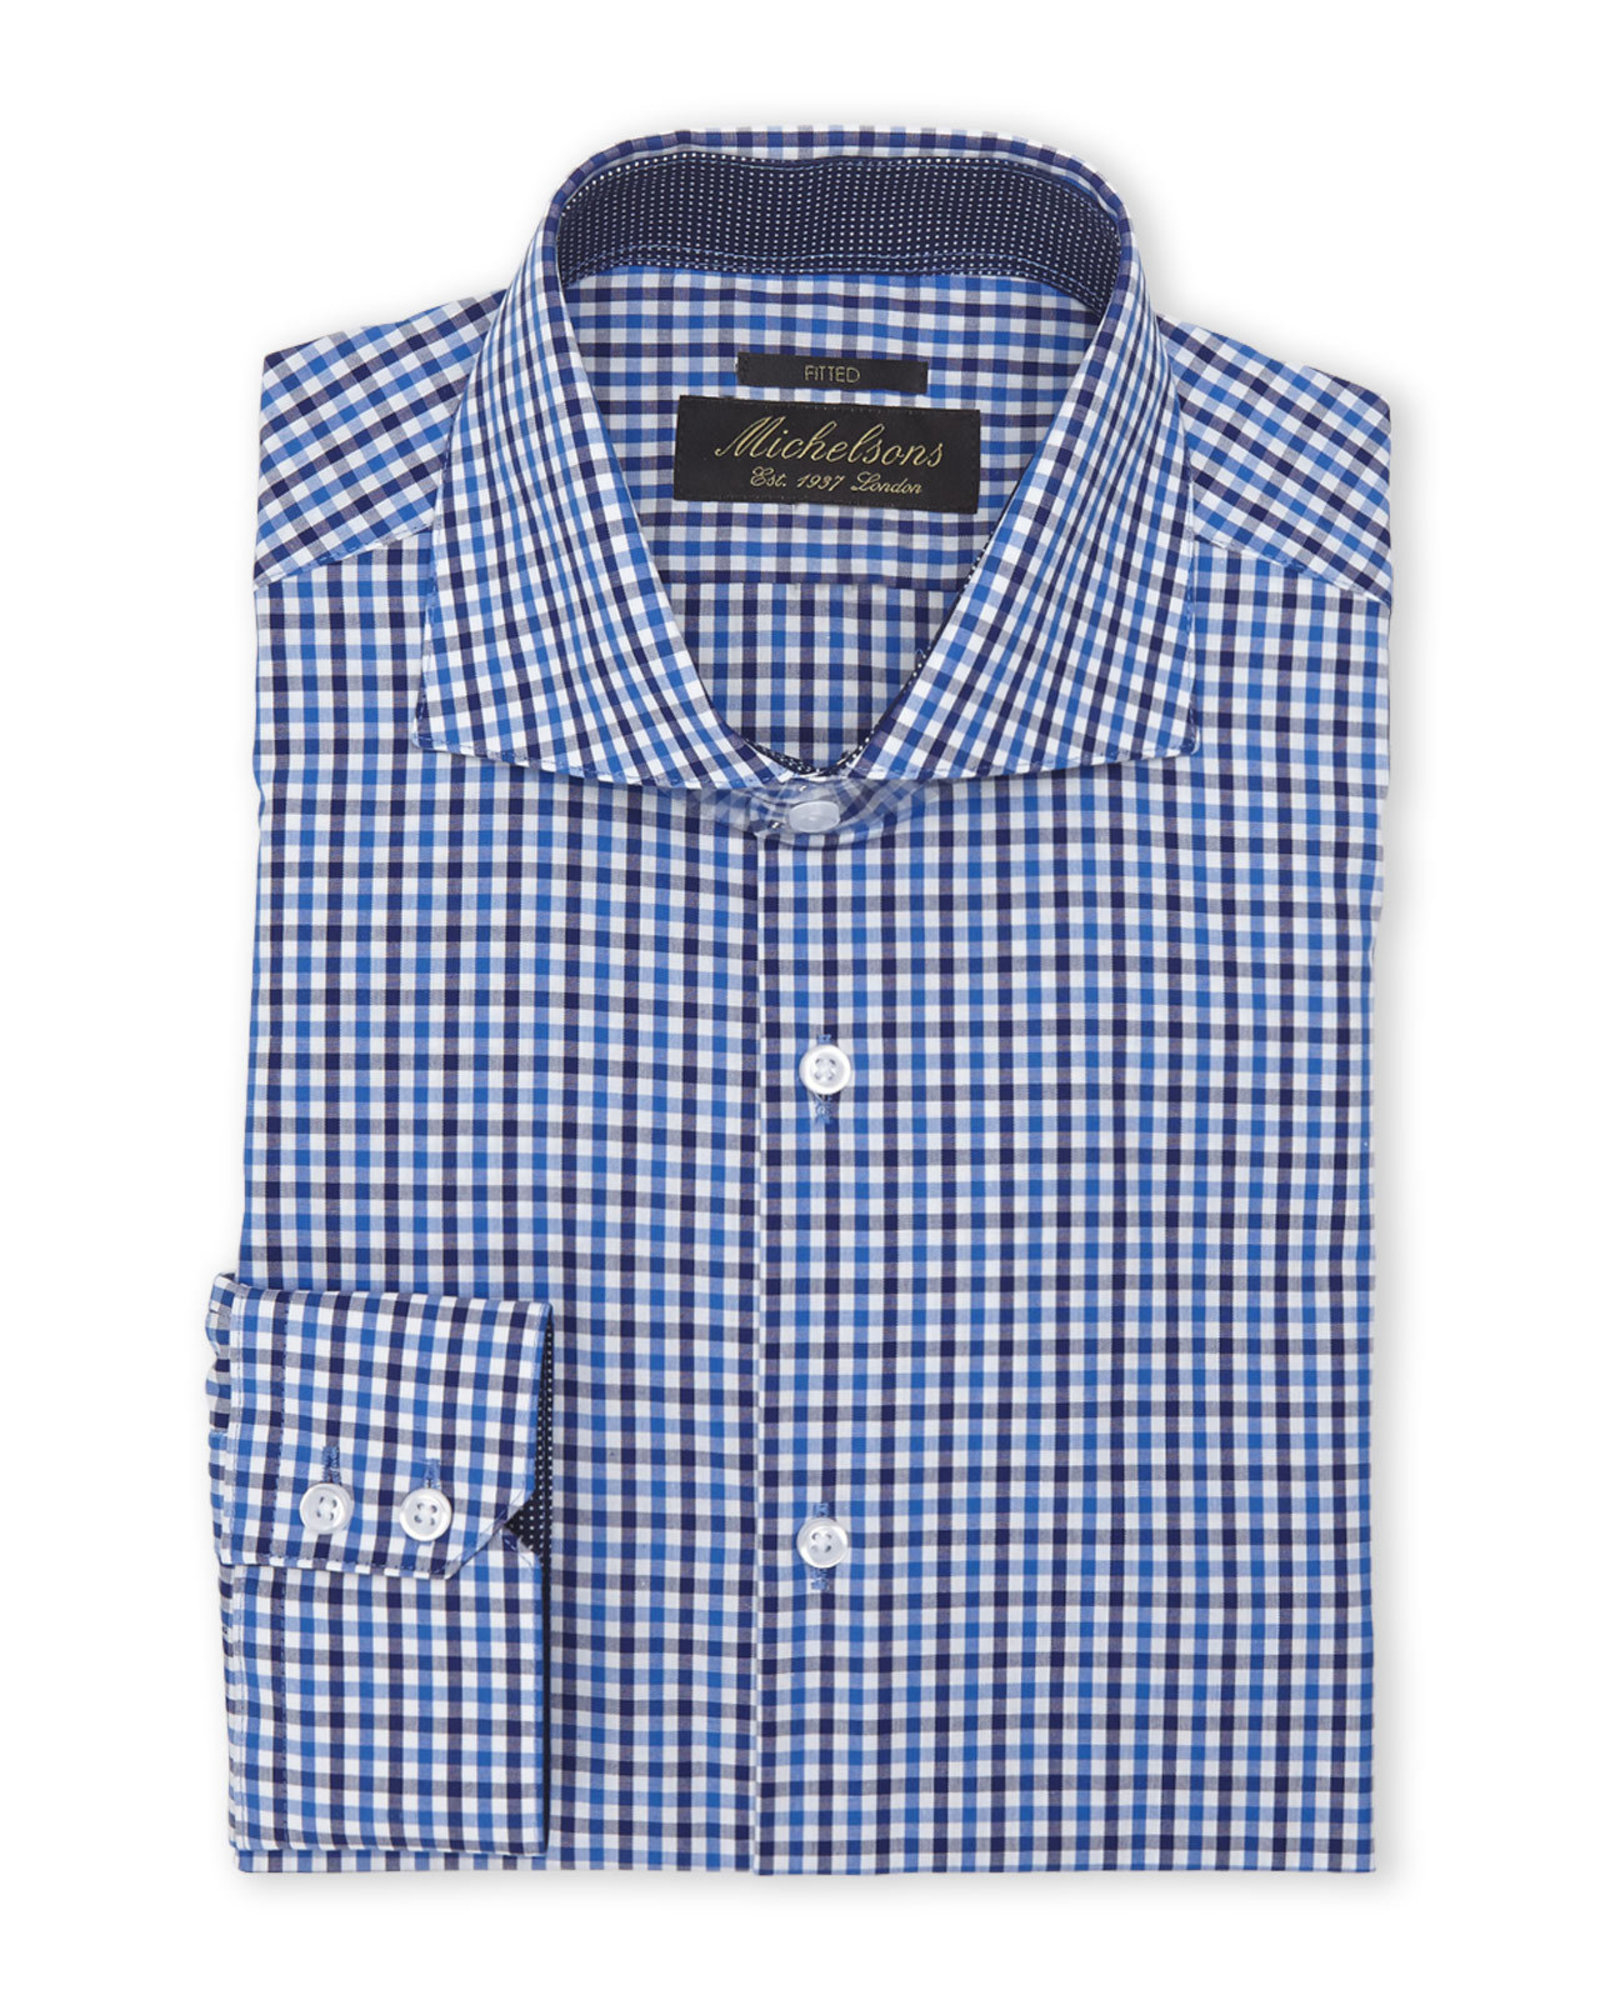 Michelsons of london navy fitted check dress shirt in blue for Navy blue checkered dress shirt